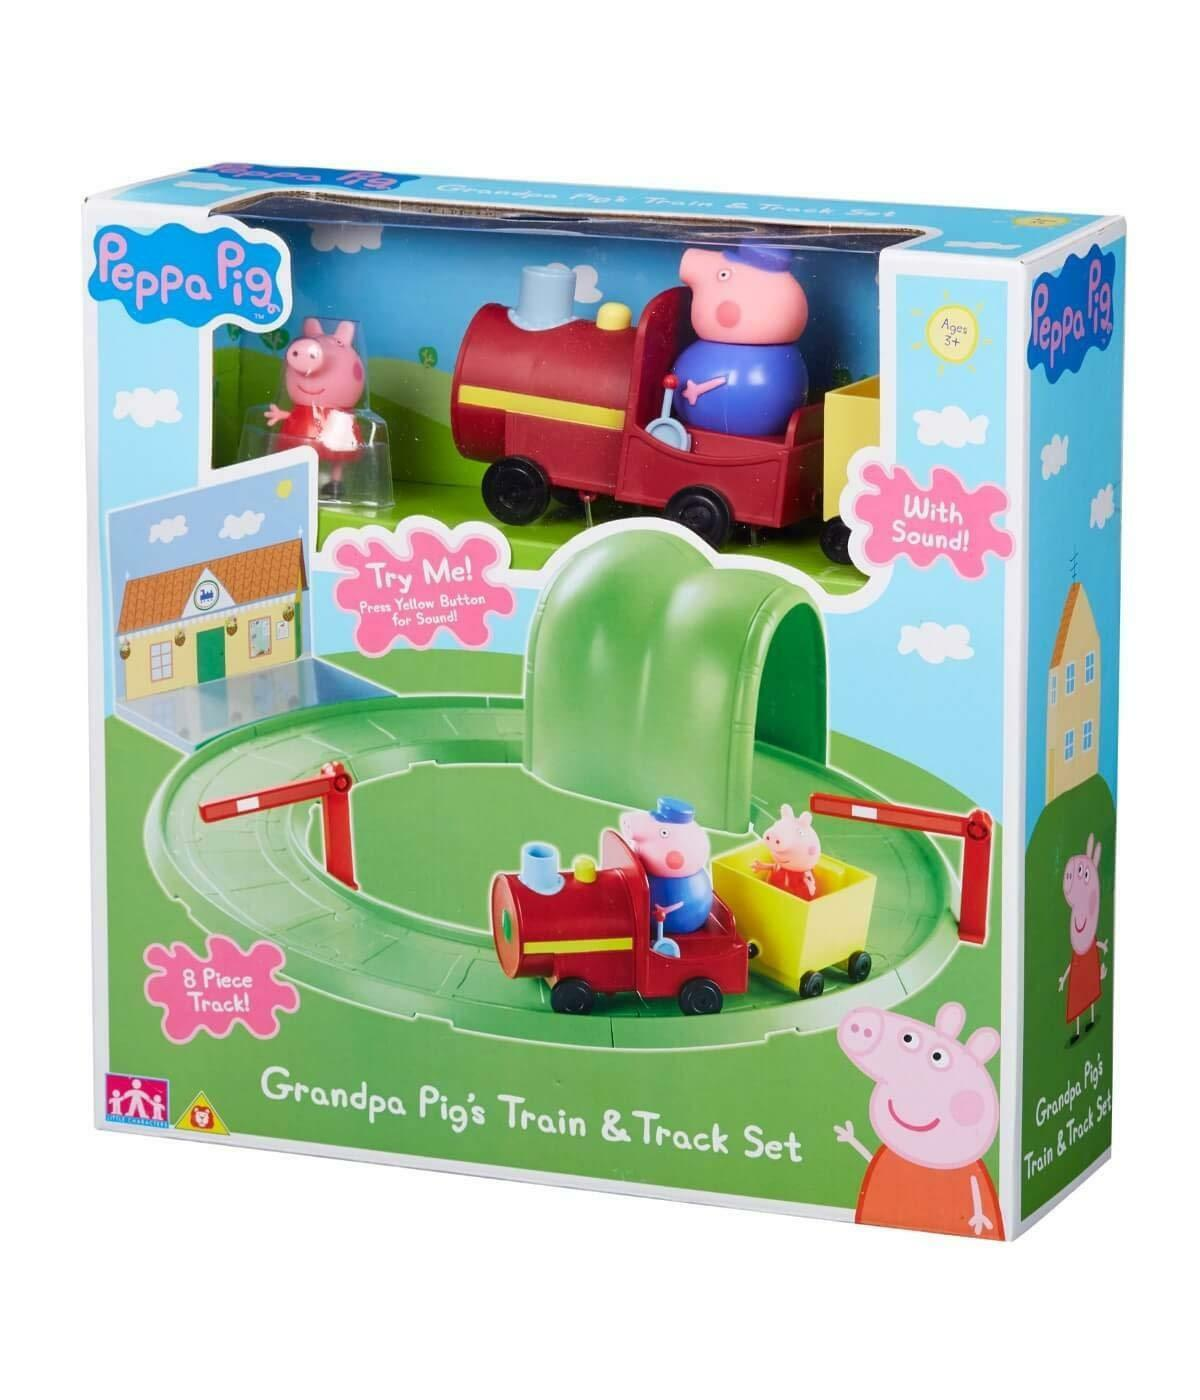 Peppa Pig Grand-Père Cochon Cochon Cochon Train & Set de Rail avec Son Ensemble de Jeux db1009